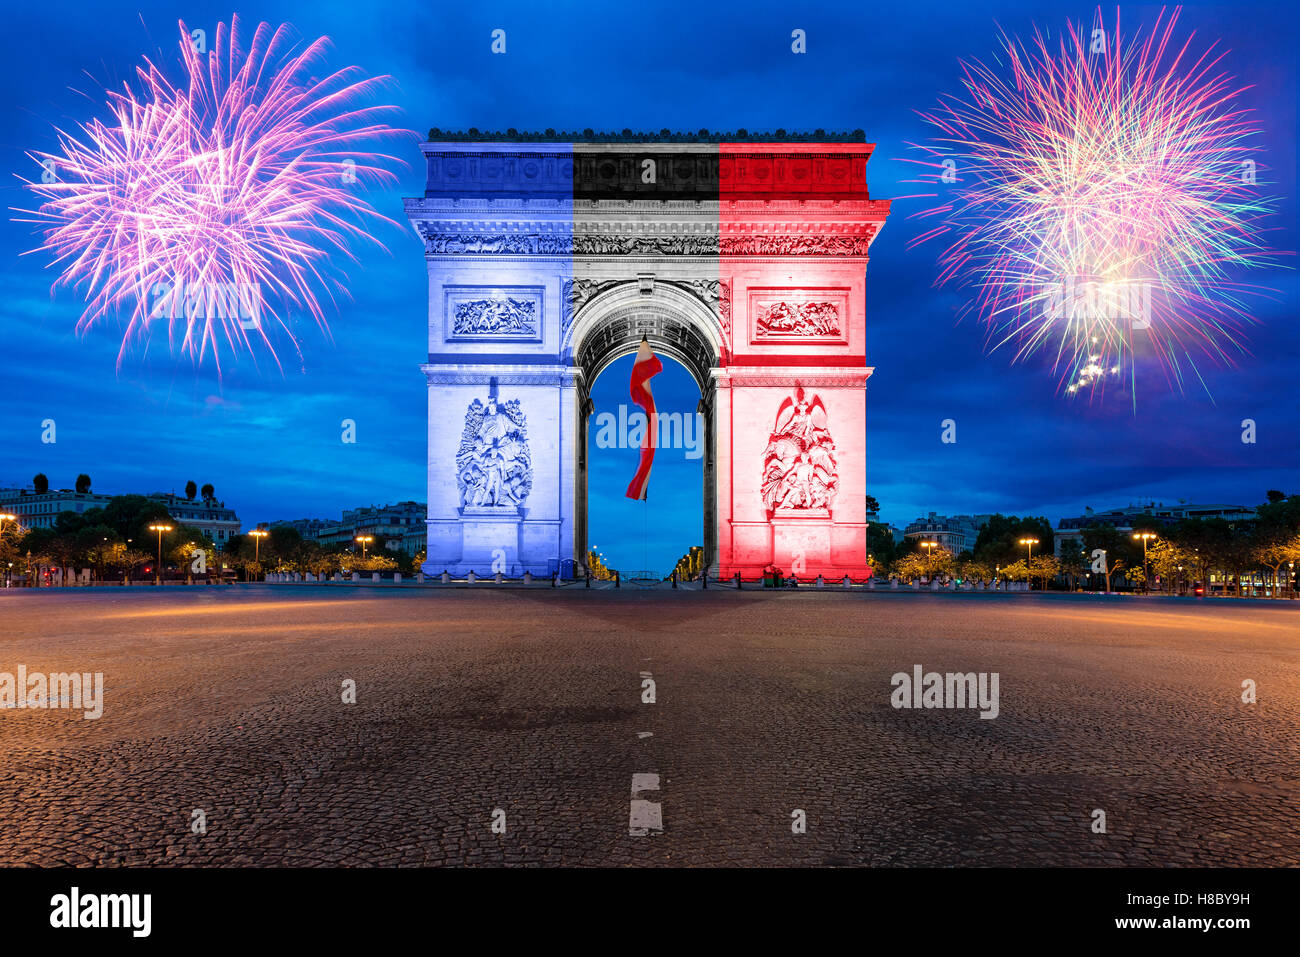 Arc de Triomphe Paris and Champs Elysees with New year fireworks at Paris, France. - Stock Image